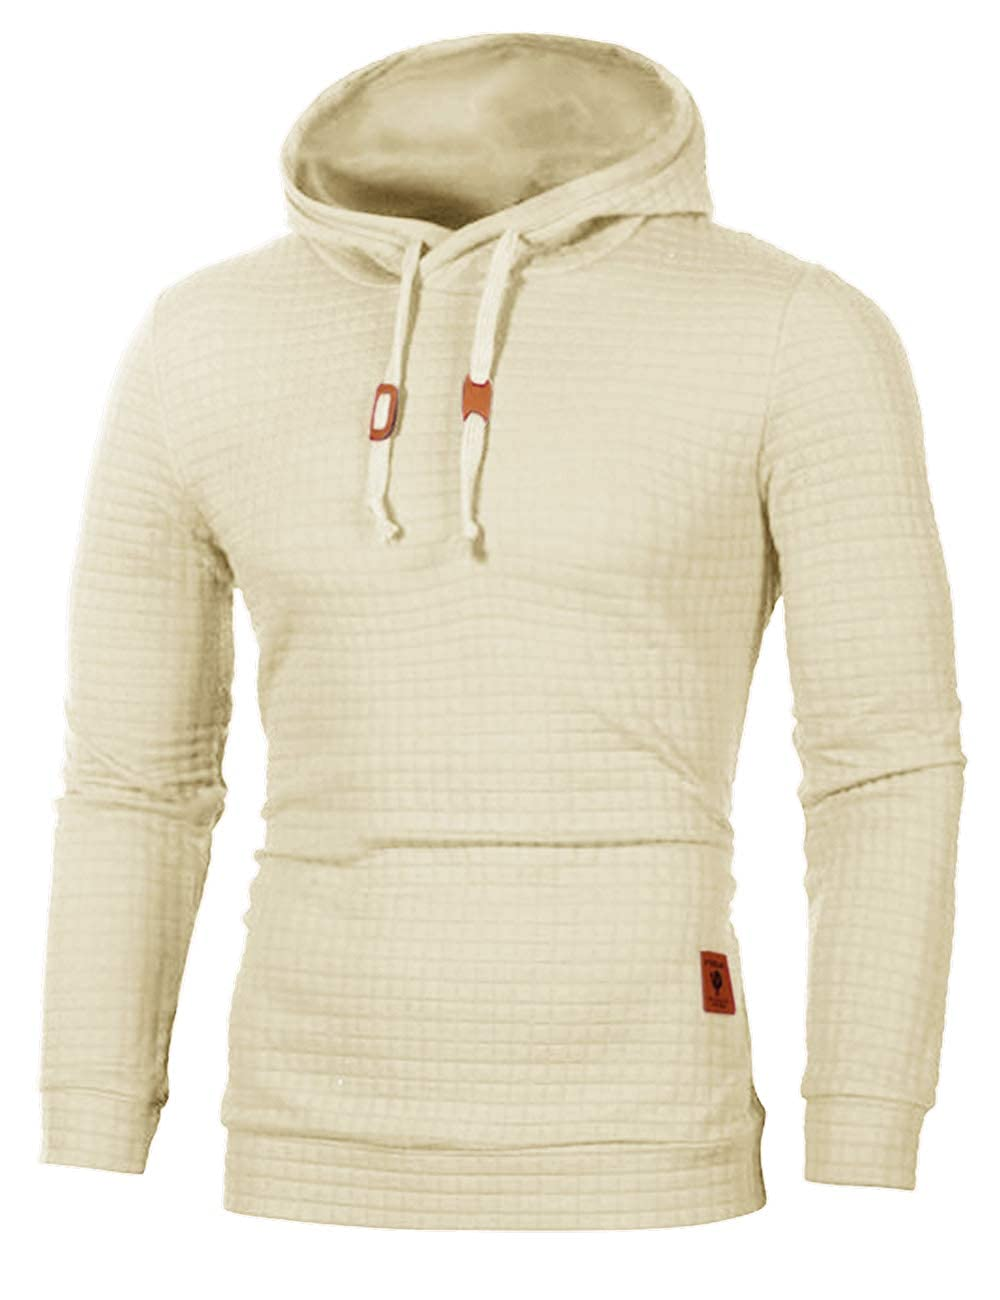 a93c9ec1 Sexyshine Men's Autumn Winter Casual Long Sleeve Funnel Neck Plaid Jacquard  Pullover Hooded Top Sweatshirt Hoodies at Amazon Men's Clothing store: